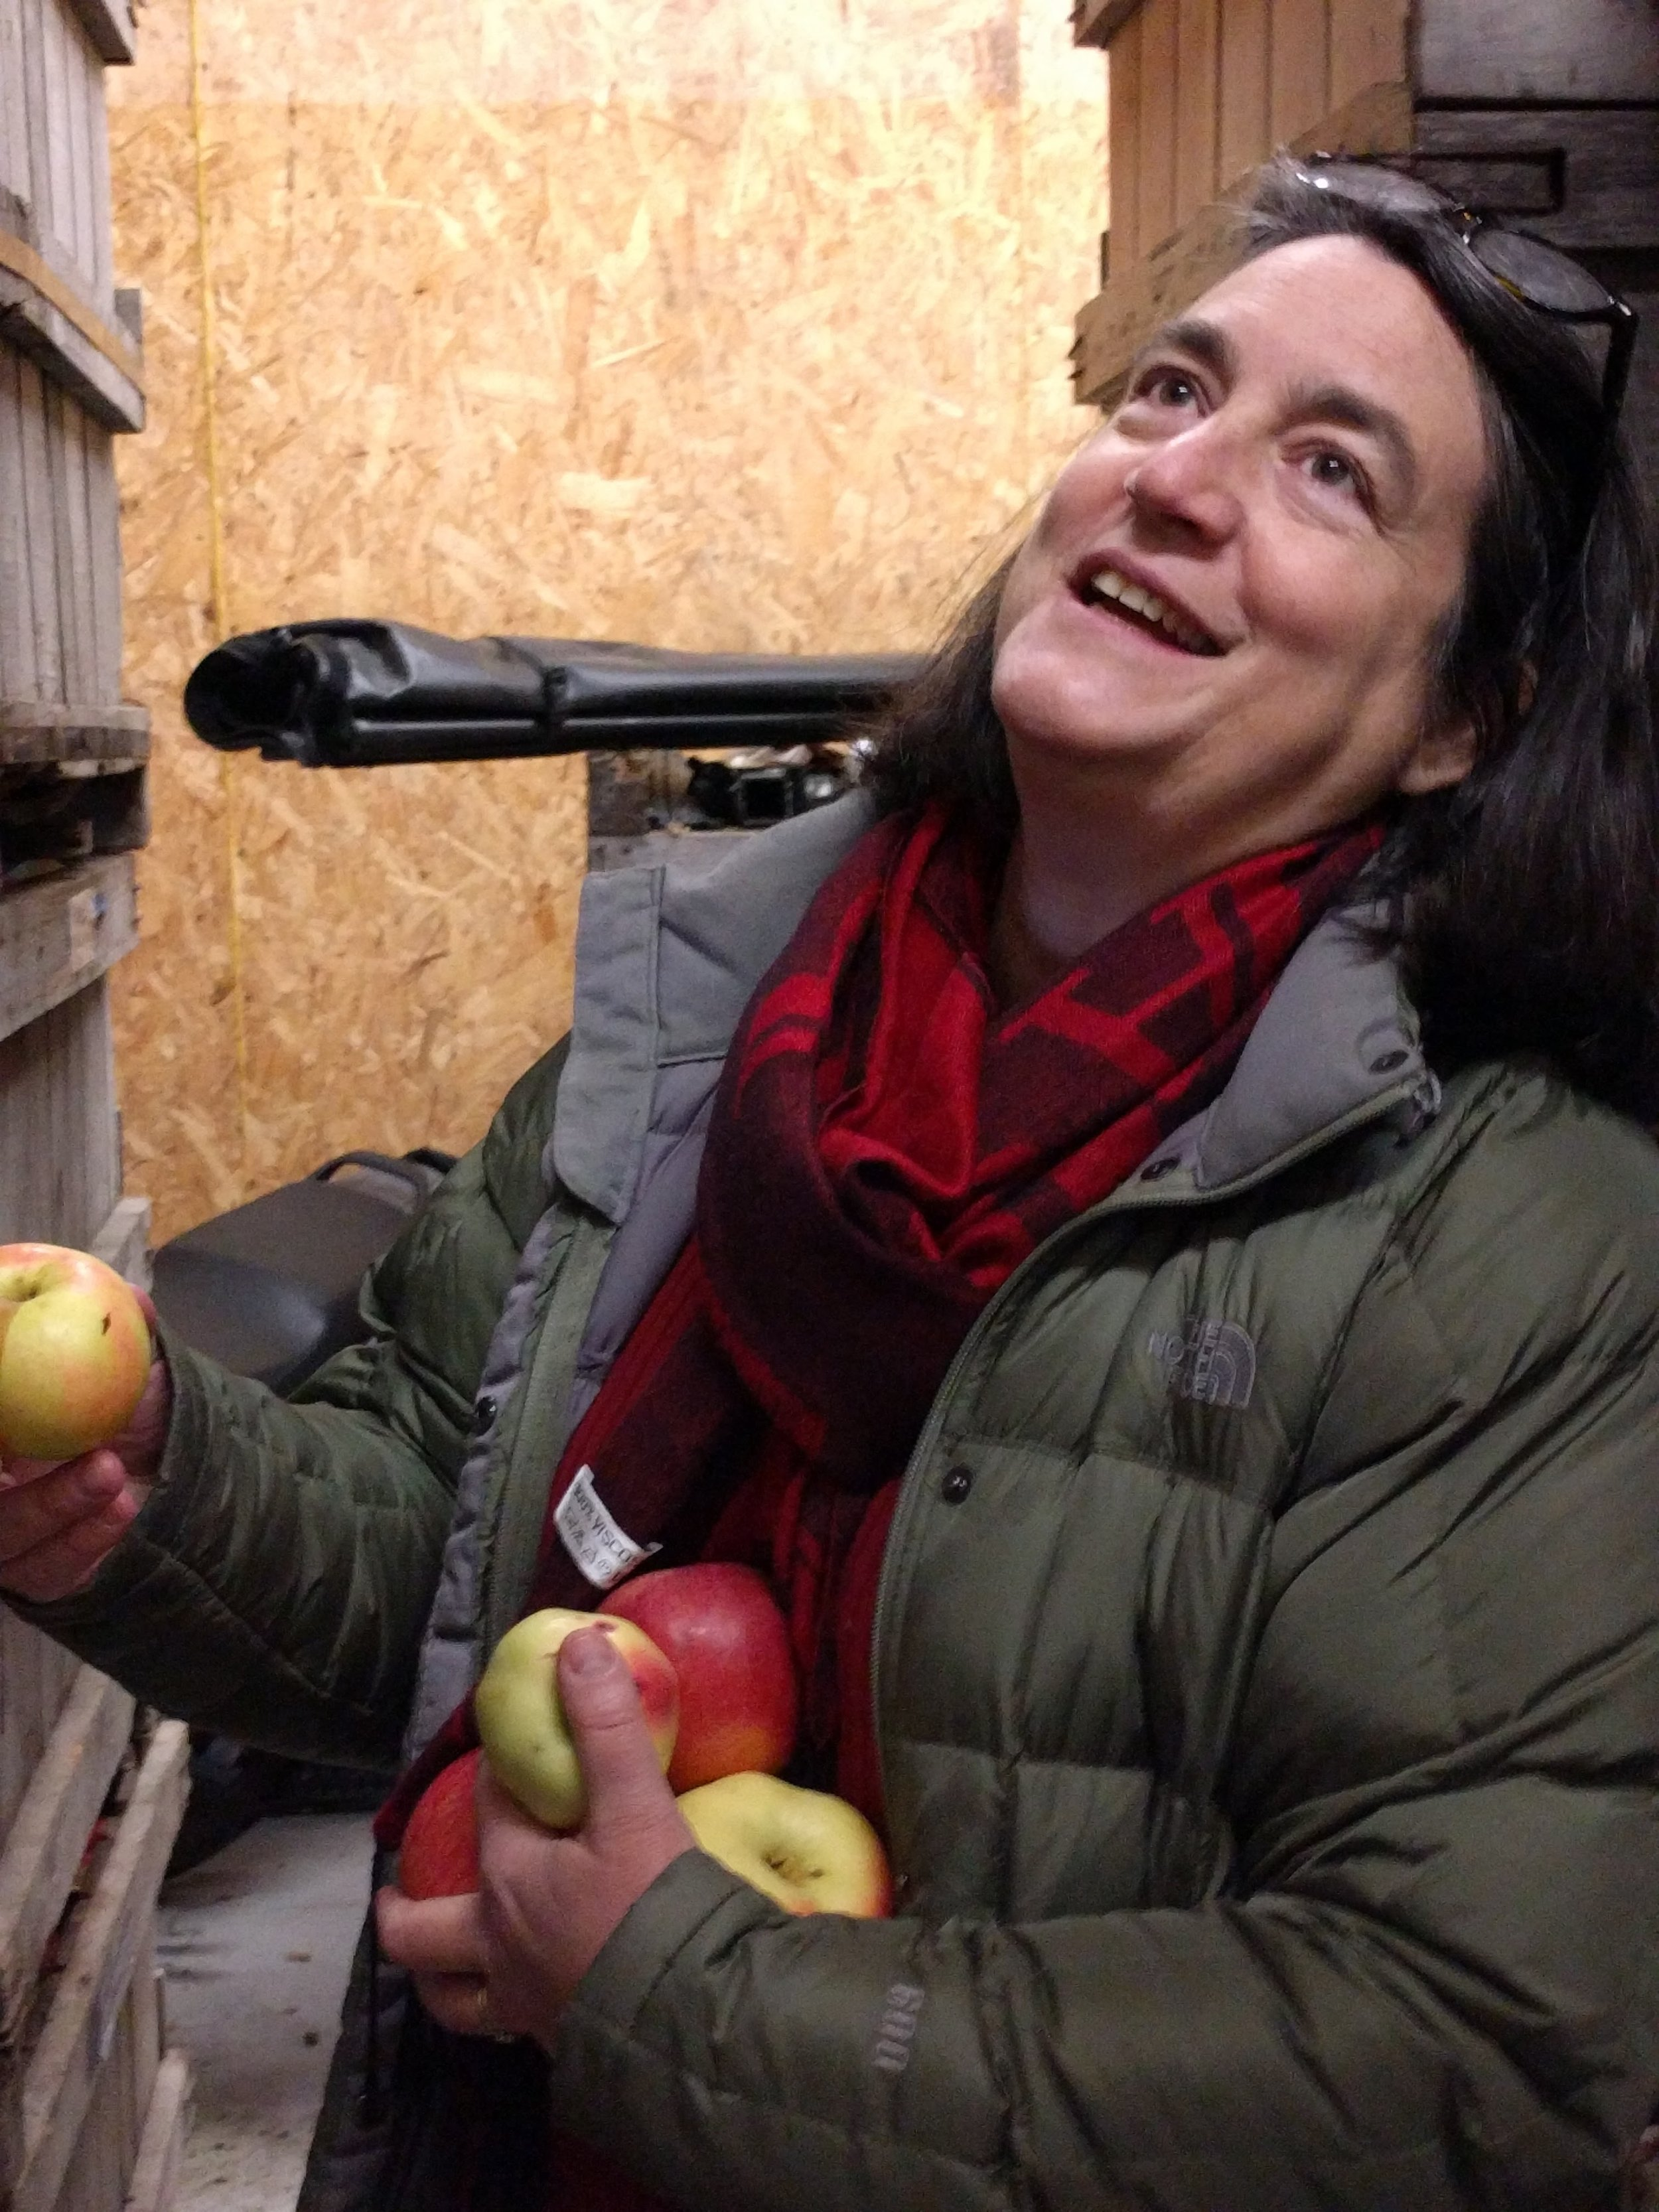 Eden Ciders    Founder Eleanor Léger, aka    @appleellie   , shared an abundance of ciders from her cellar, including the limited run Cinderella's Slipper, of which only six cases remain. Audio tasting notes are from our    orchard visit in December 2016